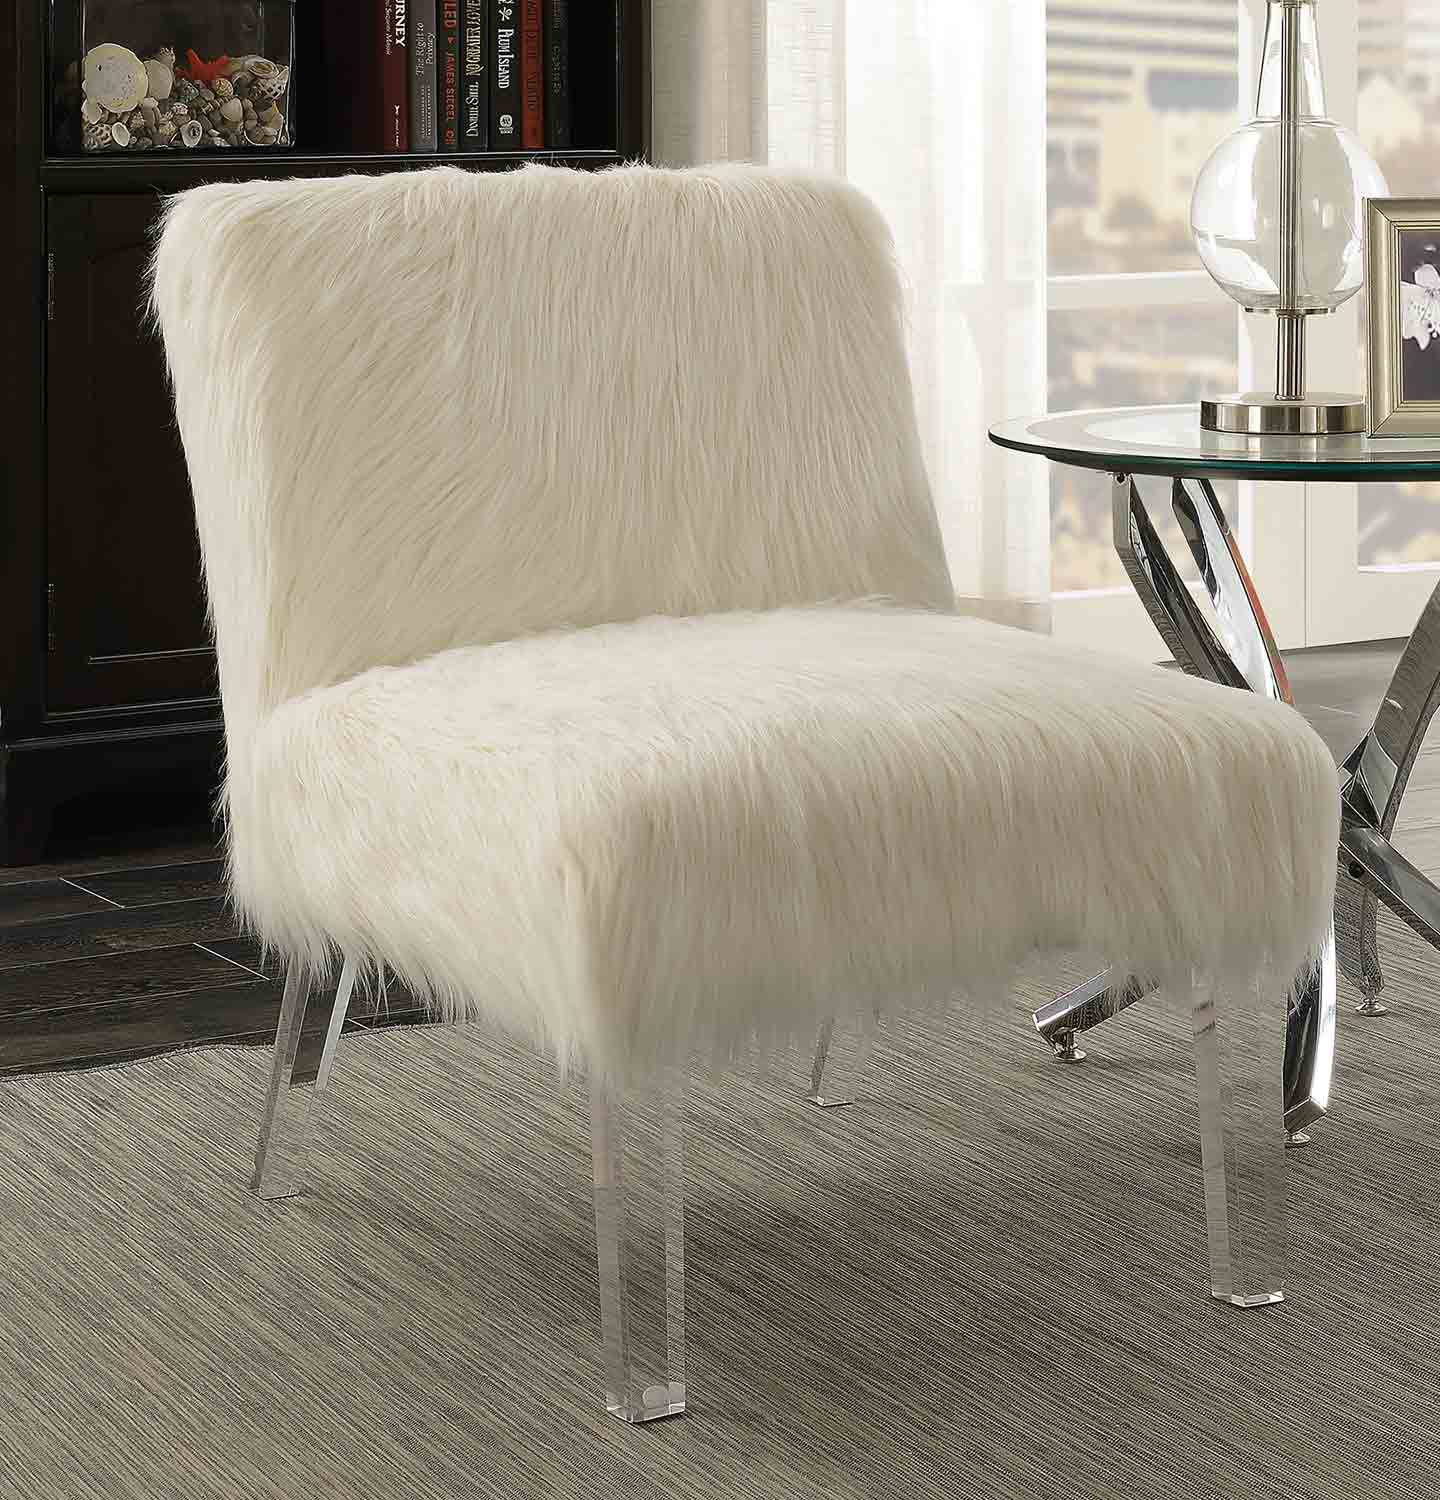 Coaster 904059 Accent Chair - White/Clear